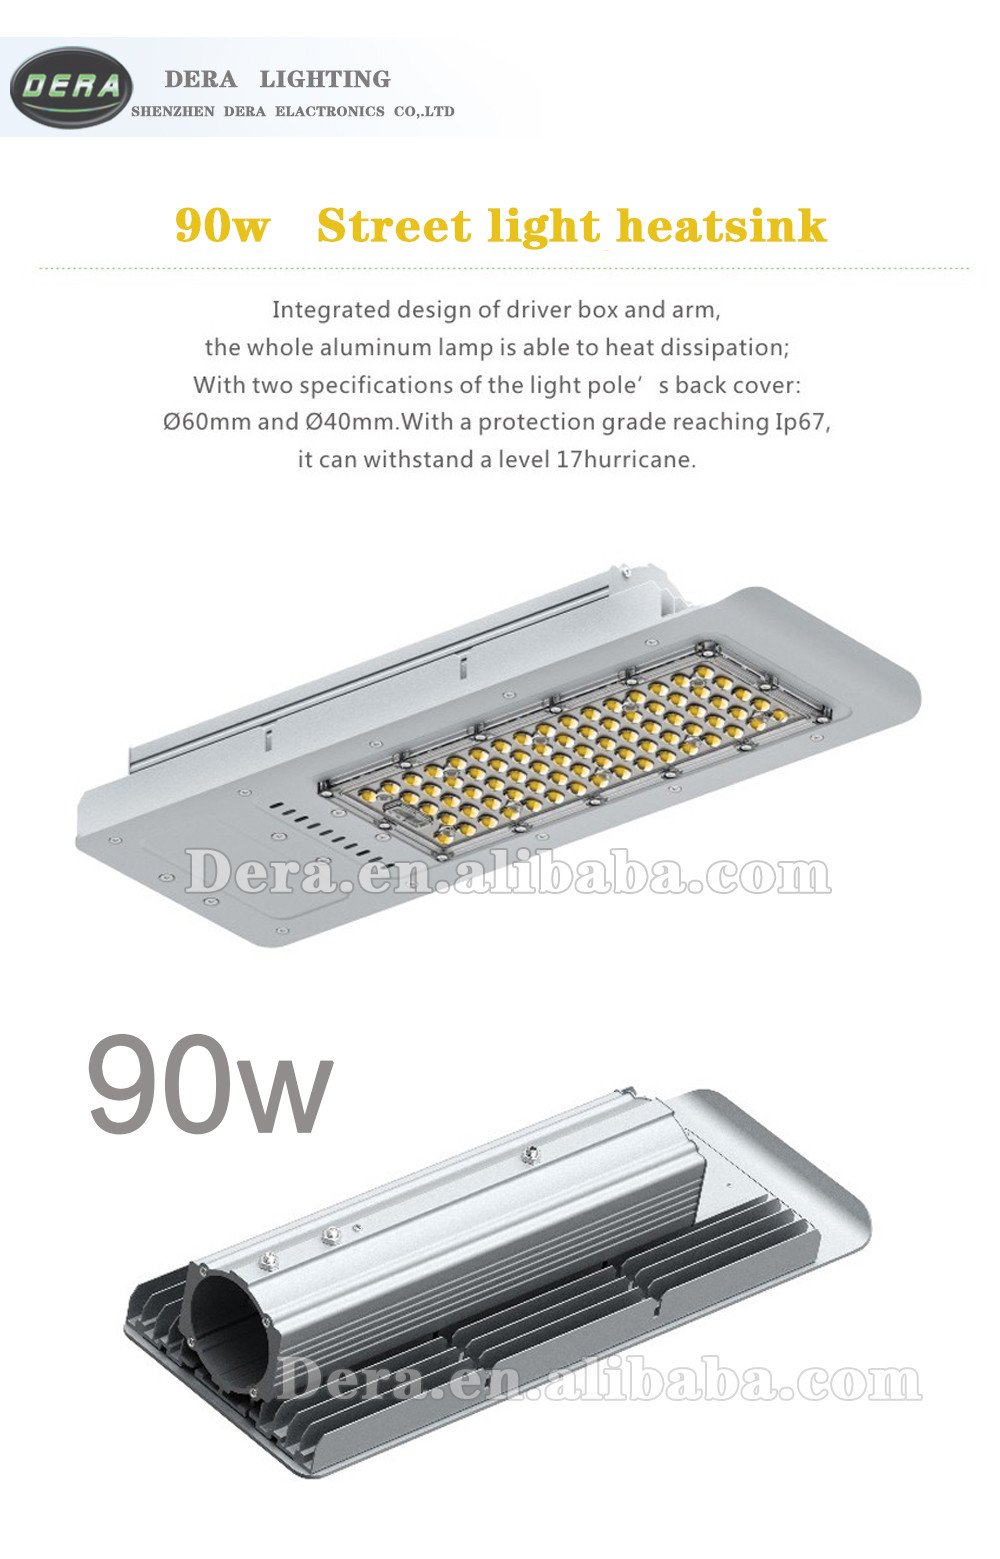 90w 90 watt led street light solar led street lights cob LED street lighting made in shenzhen factory